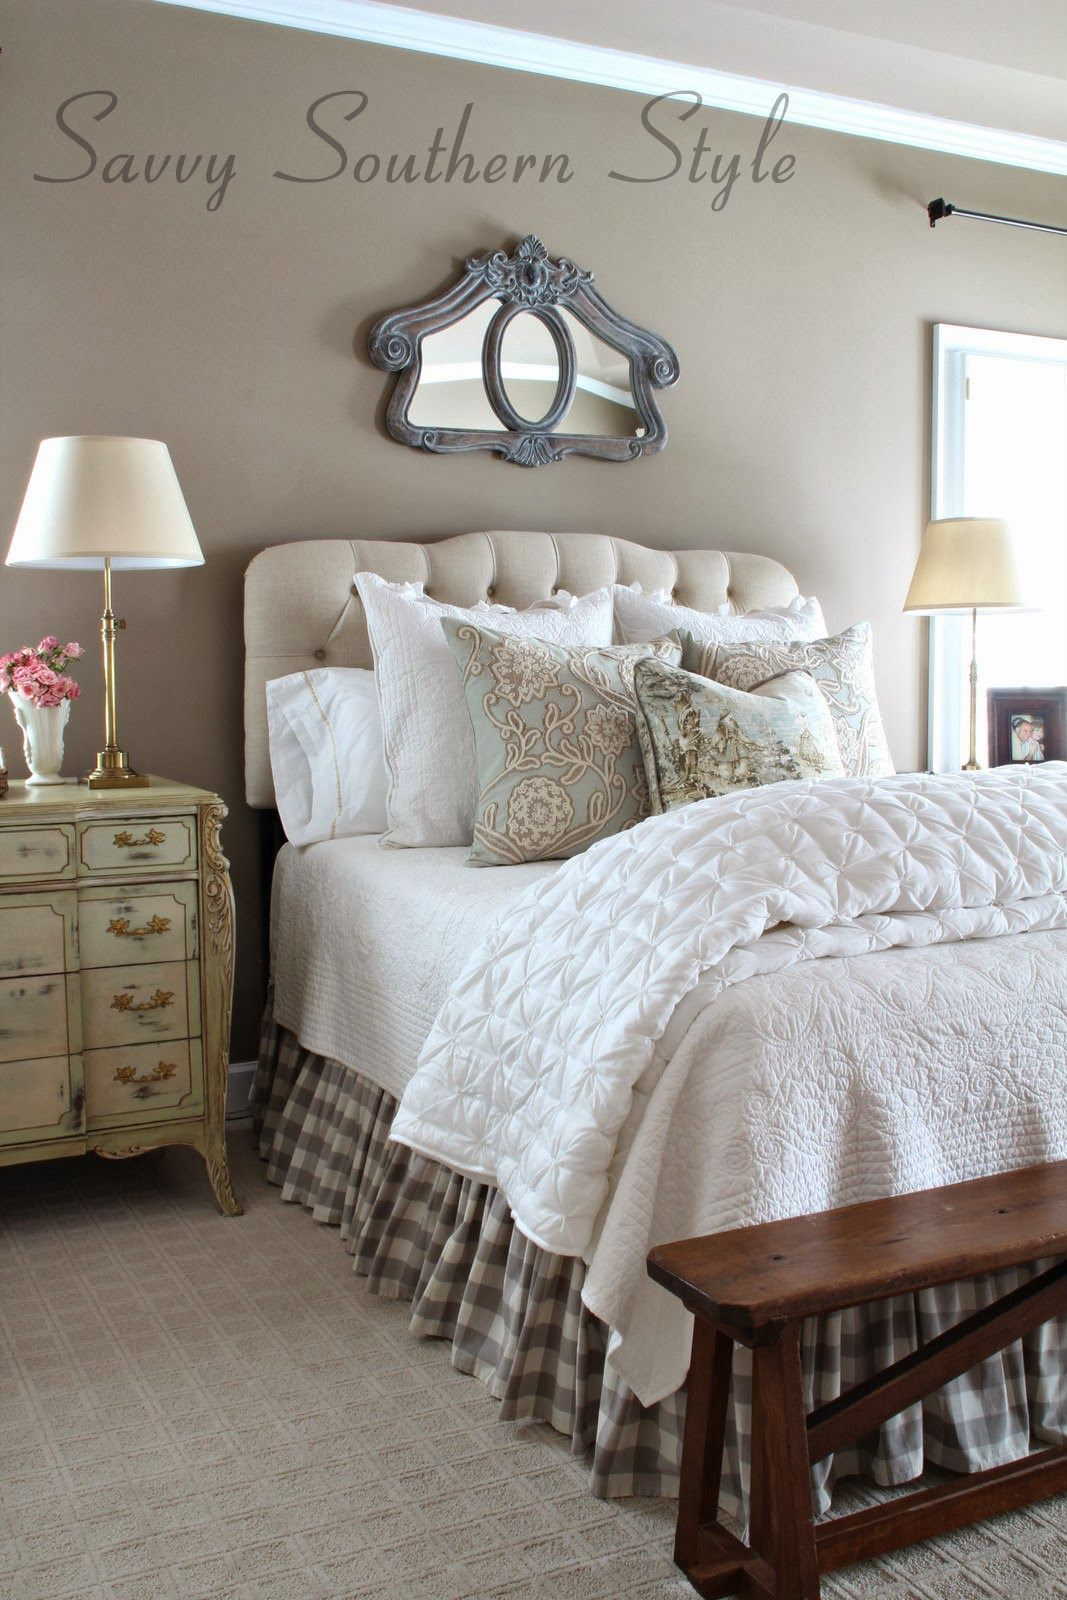 Savvy Southern Style Adding French Farmhouse Style In The Master Fabulously Creative Diy